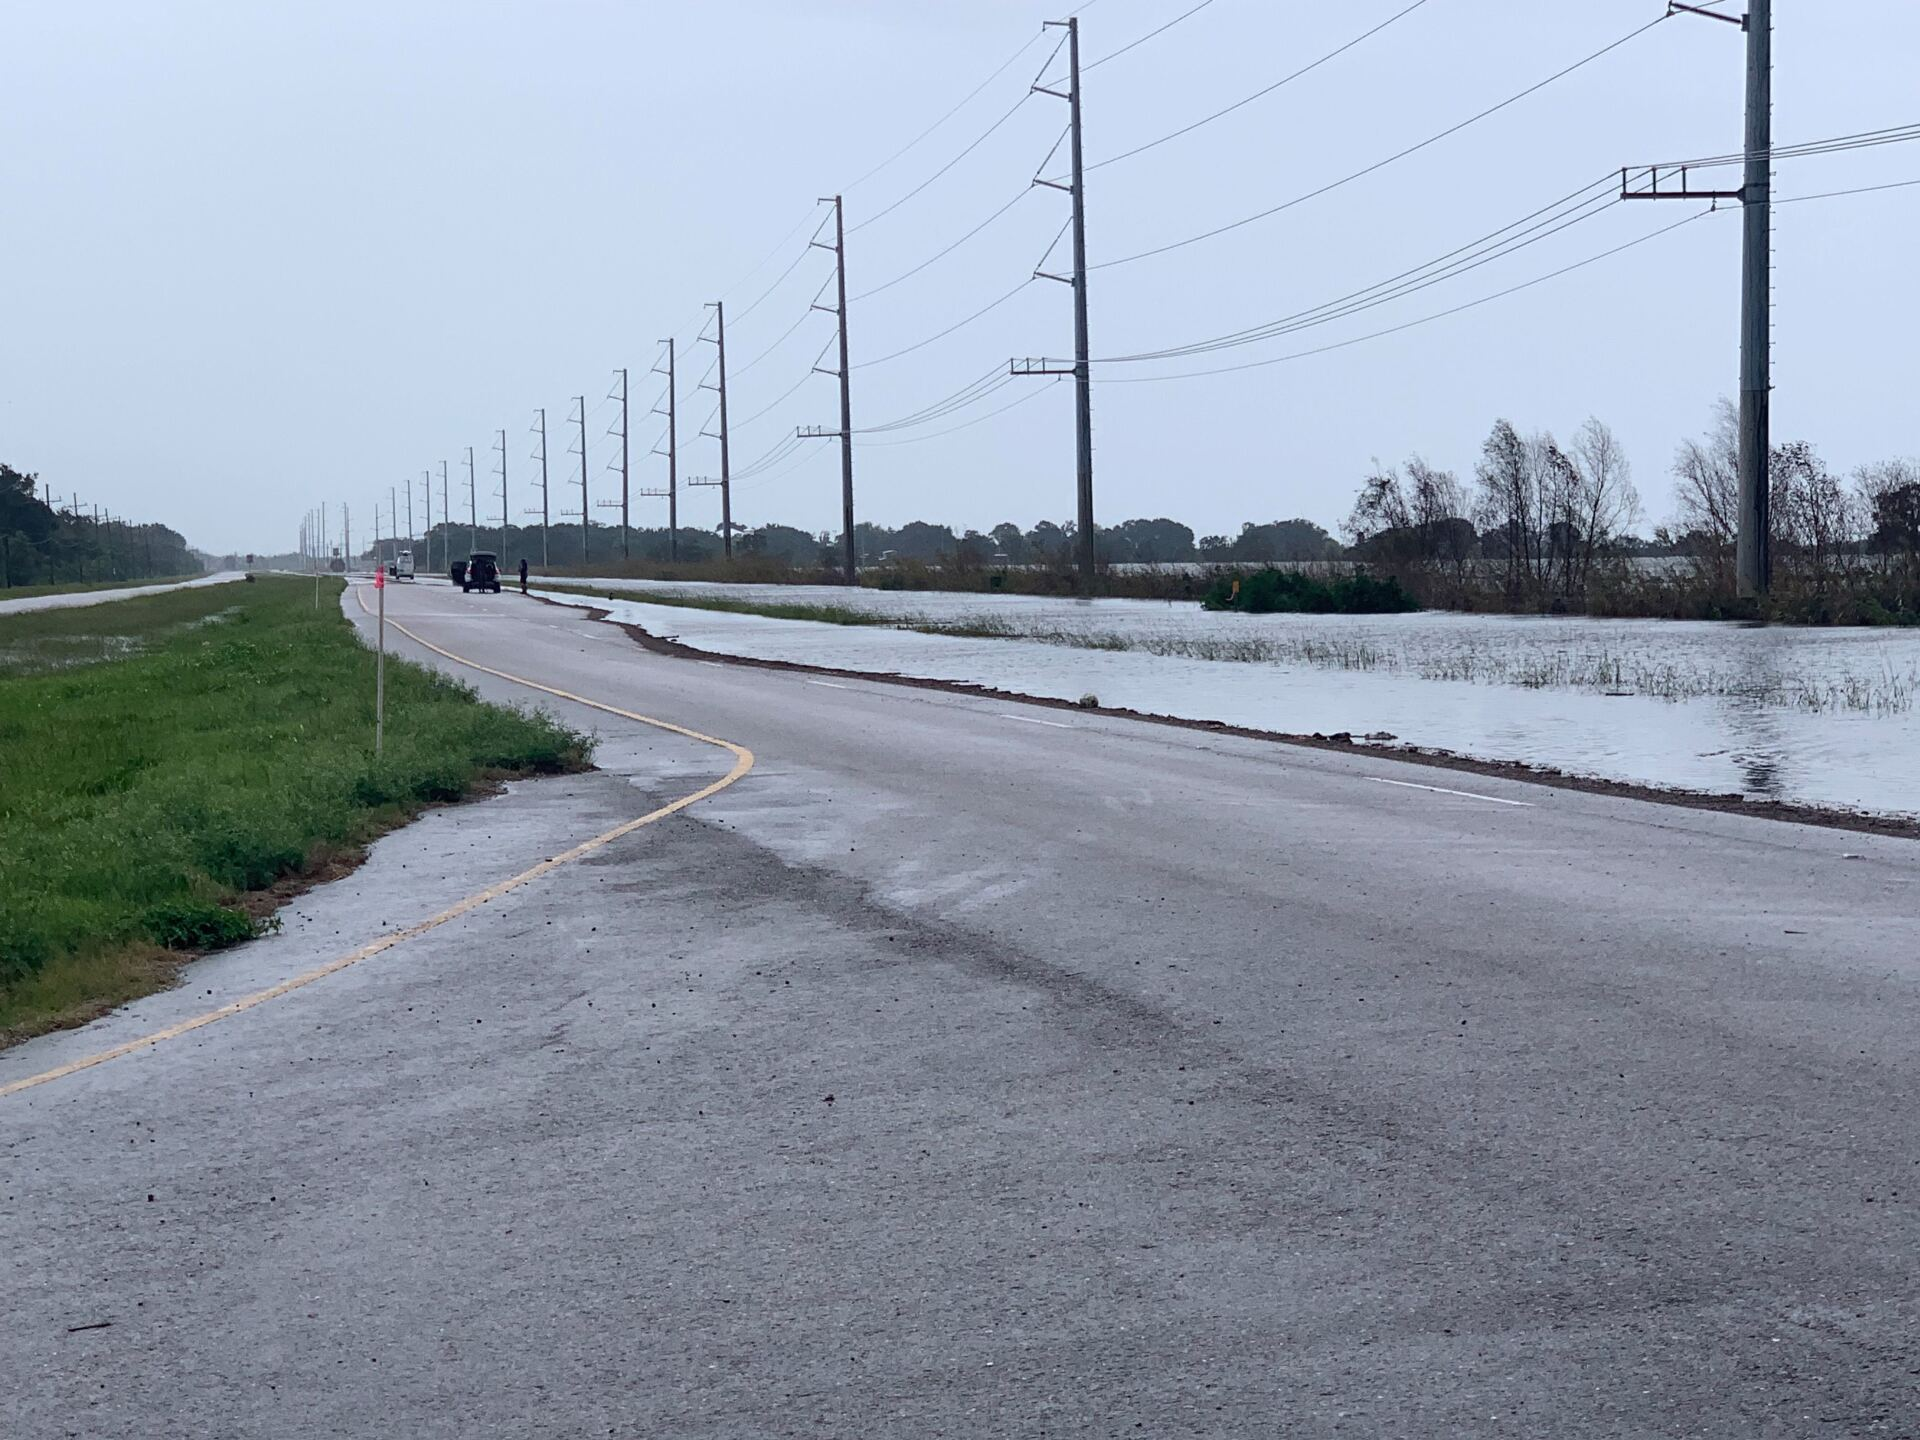 Barry flooding in Plaquemines Parish Louisiana